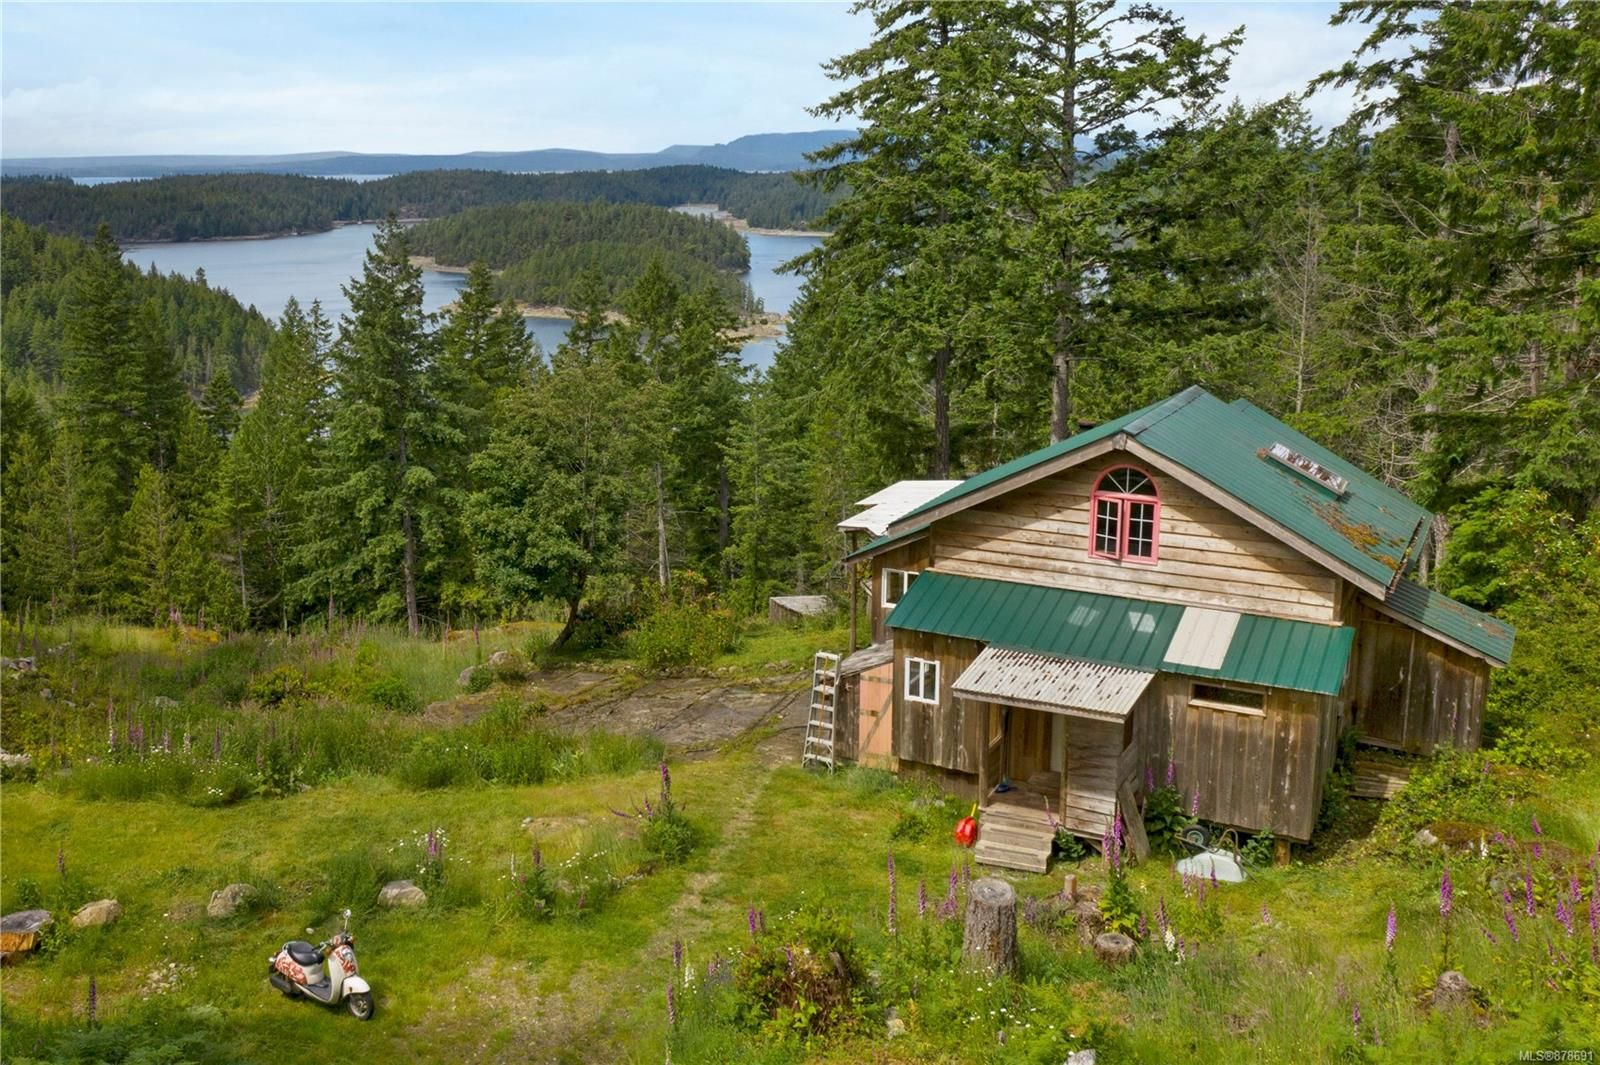 Photo 17: Photos: 979 Thunder Rd in : Isl Cortes Island House for sale (Islands)  : MLS®# 878691